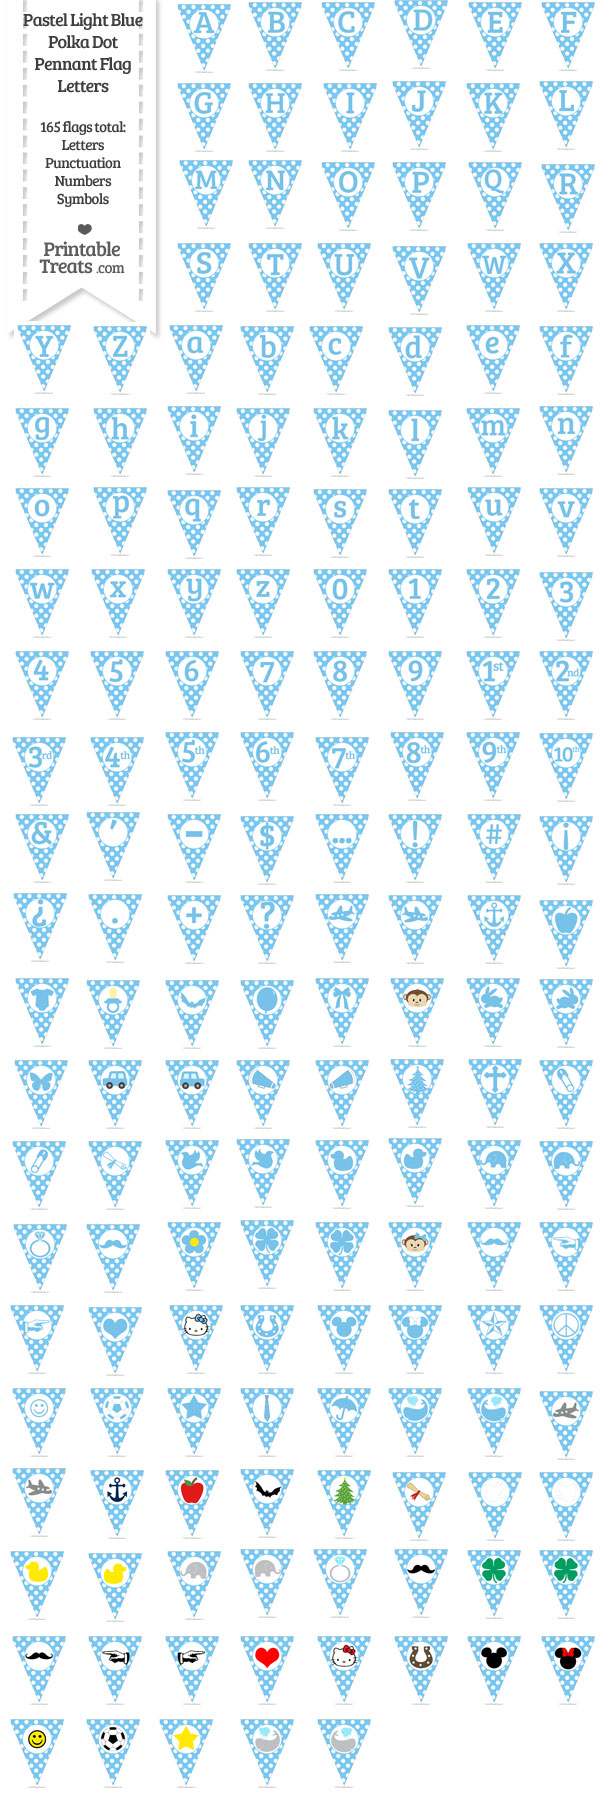 Pastel Light Blue Polka Dot Pennant Flag Letters Download from PrintableTreats.com